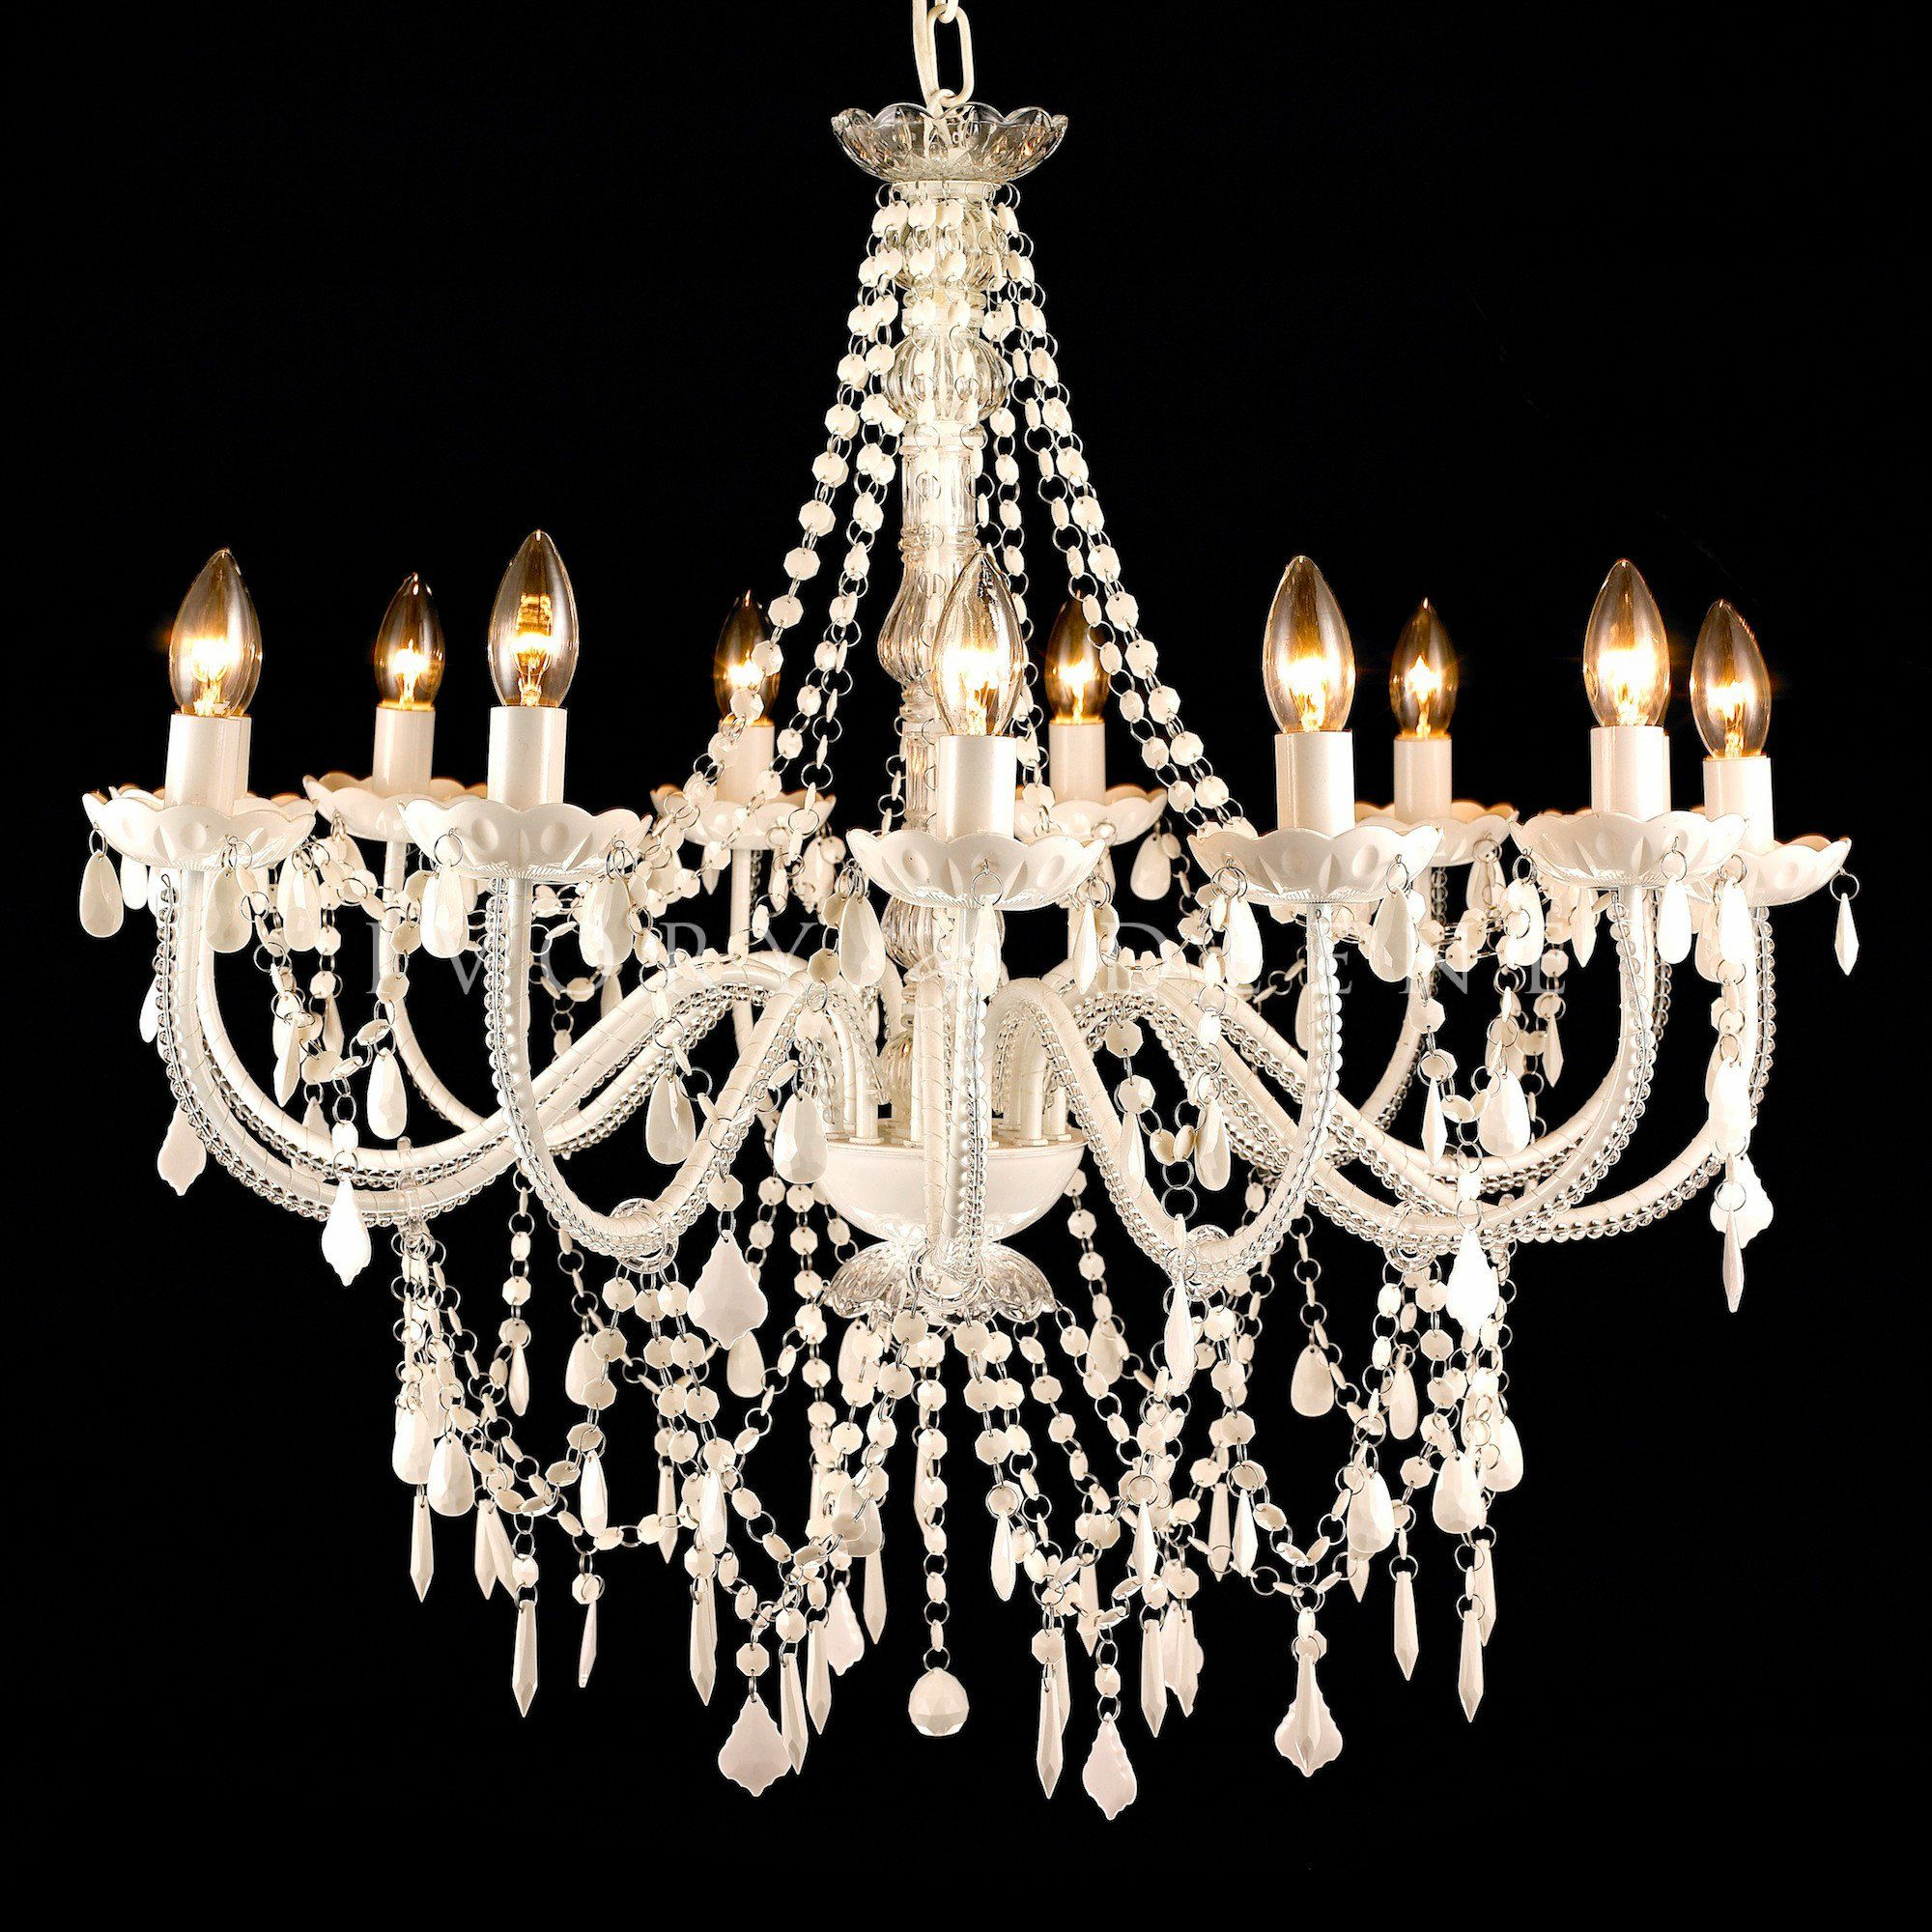 light chandeliers lighting chandelier large in style drum shade mount flush crystal dp home fixture pendant cylinder ceiling modern silver lightinthebox